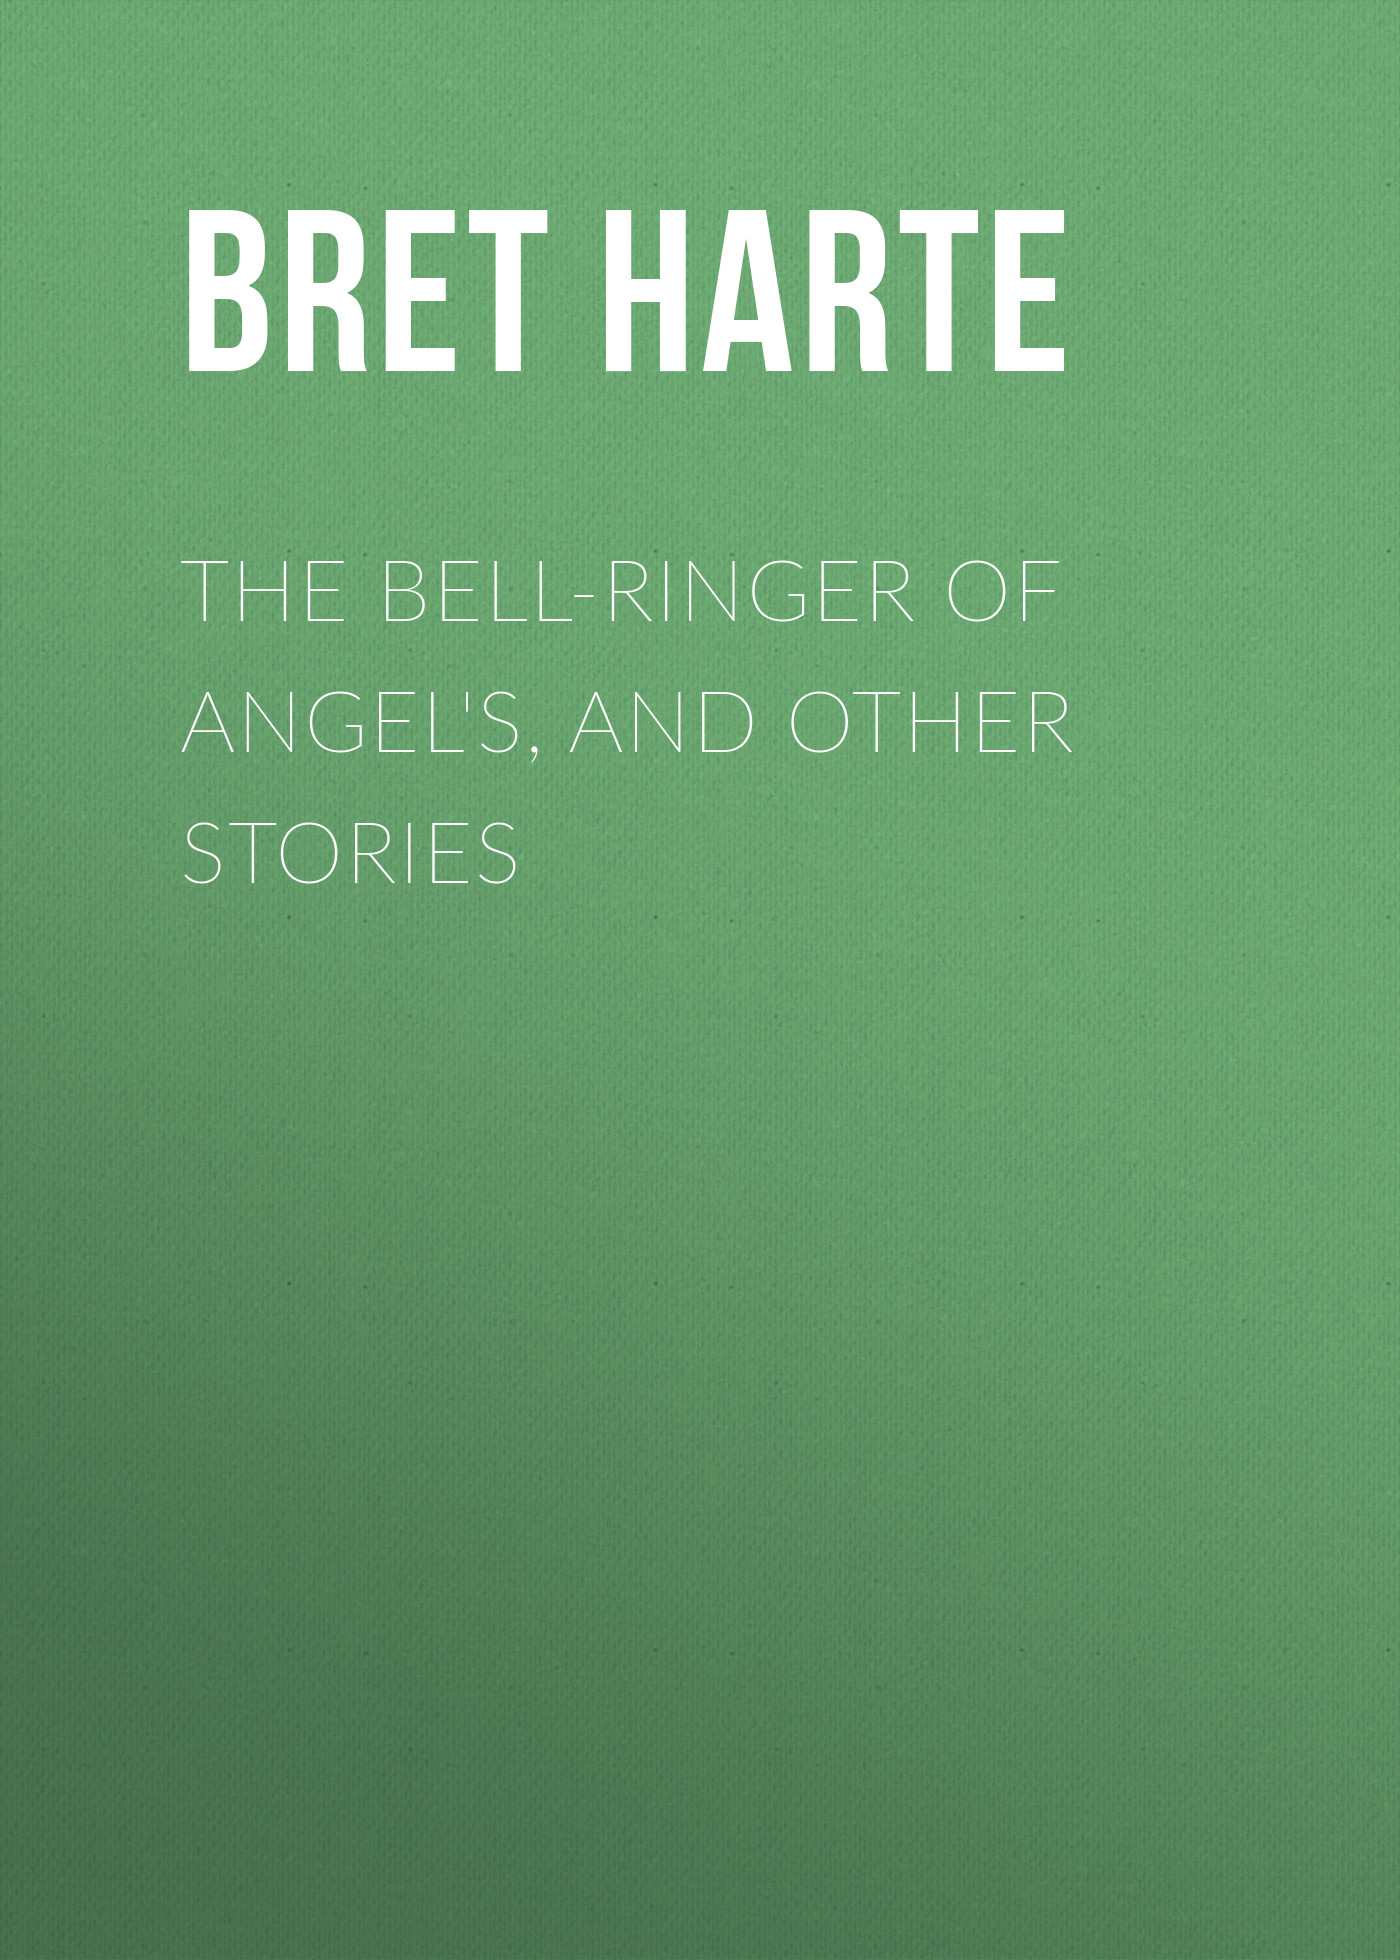 Bret Harte The Bell-Ringer of Angel's, and Other Stories стоимость